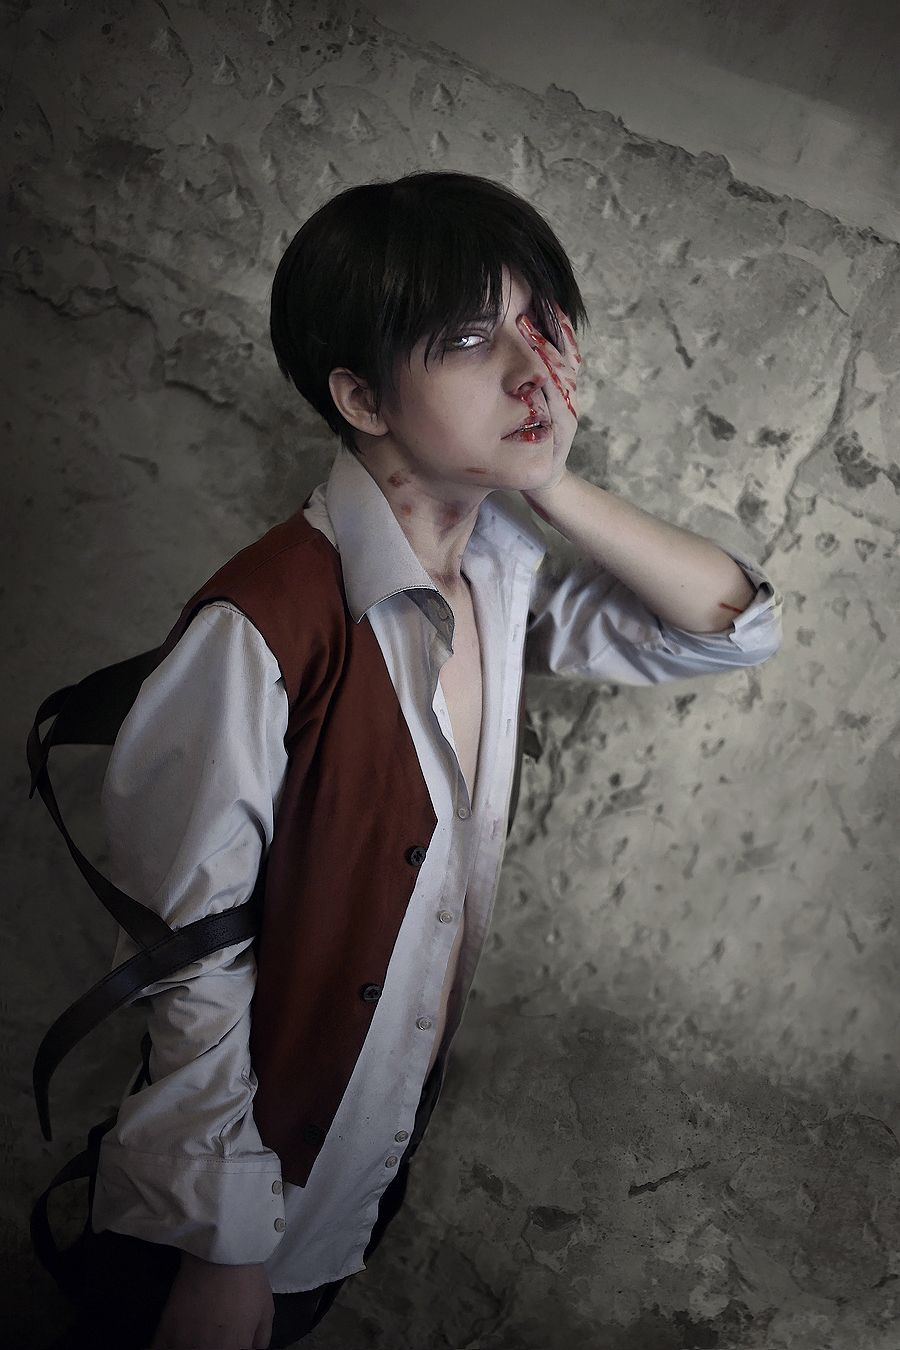 Gut bekannt Dantelian(Dantelian) Levi Cosplay Photo - WorldCosplay | Cosplay  CT55